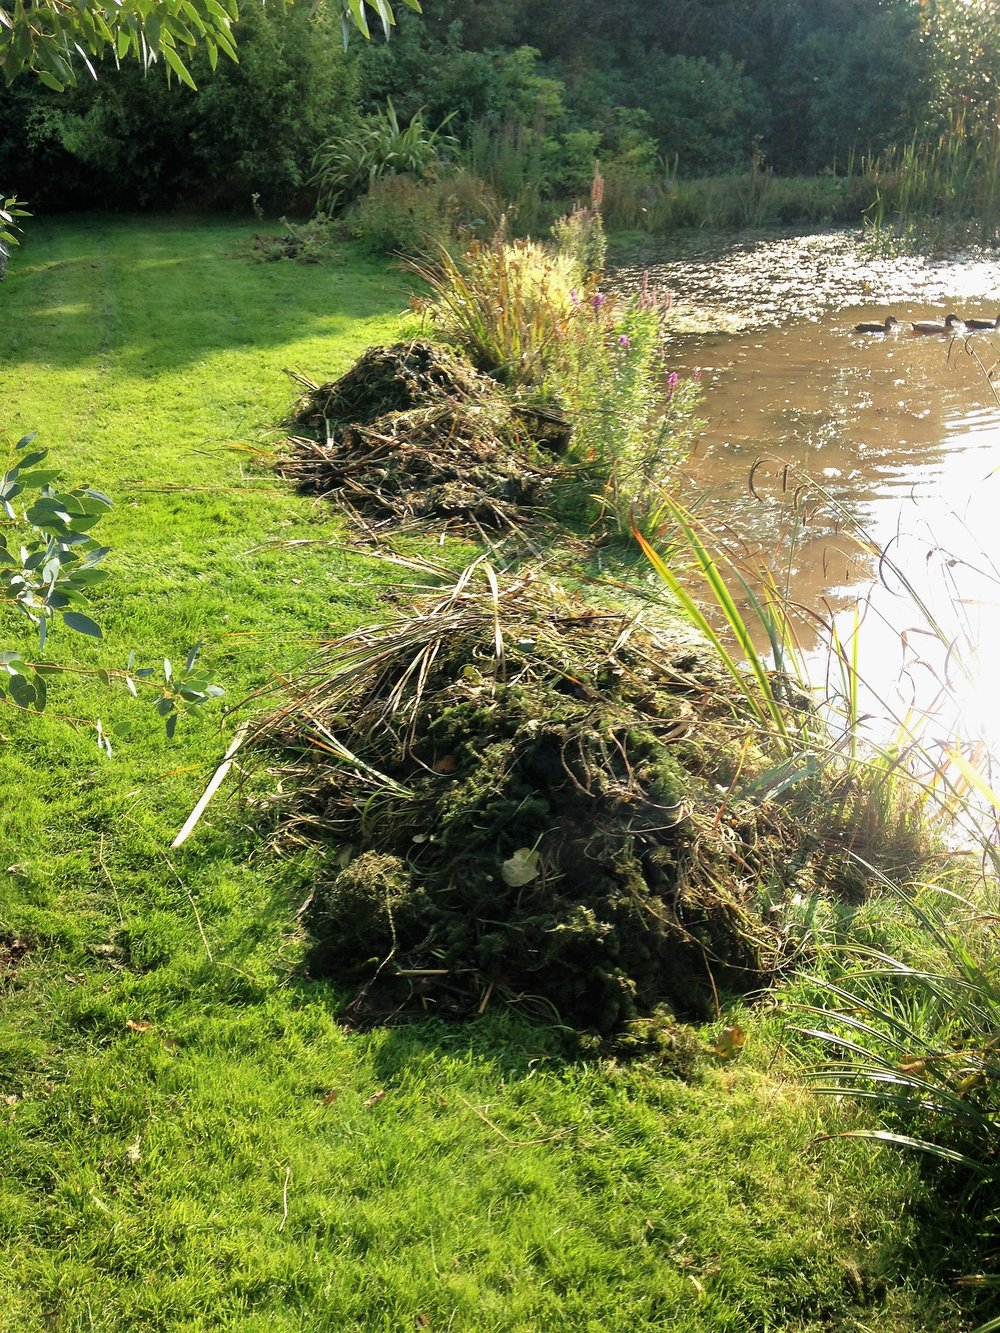 Large aquatic weed pile